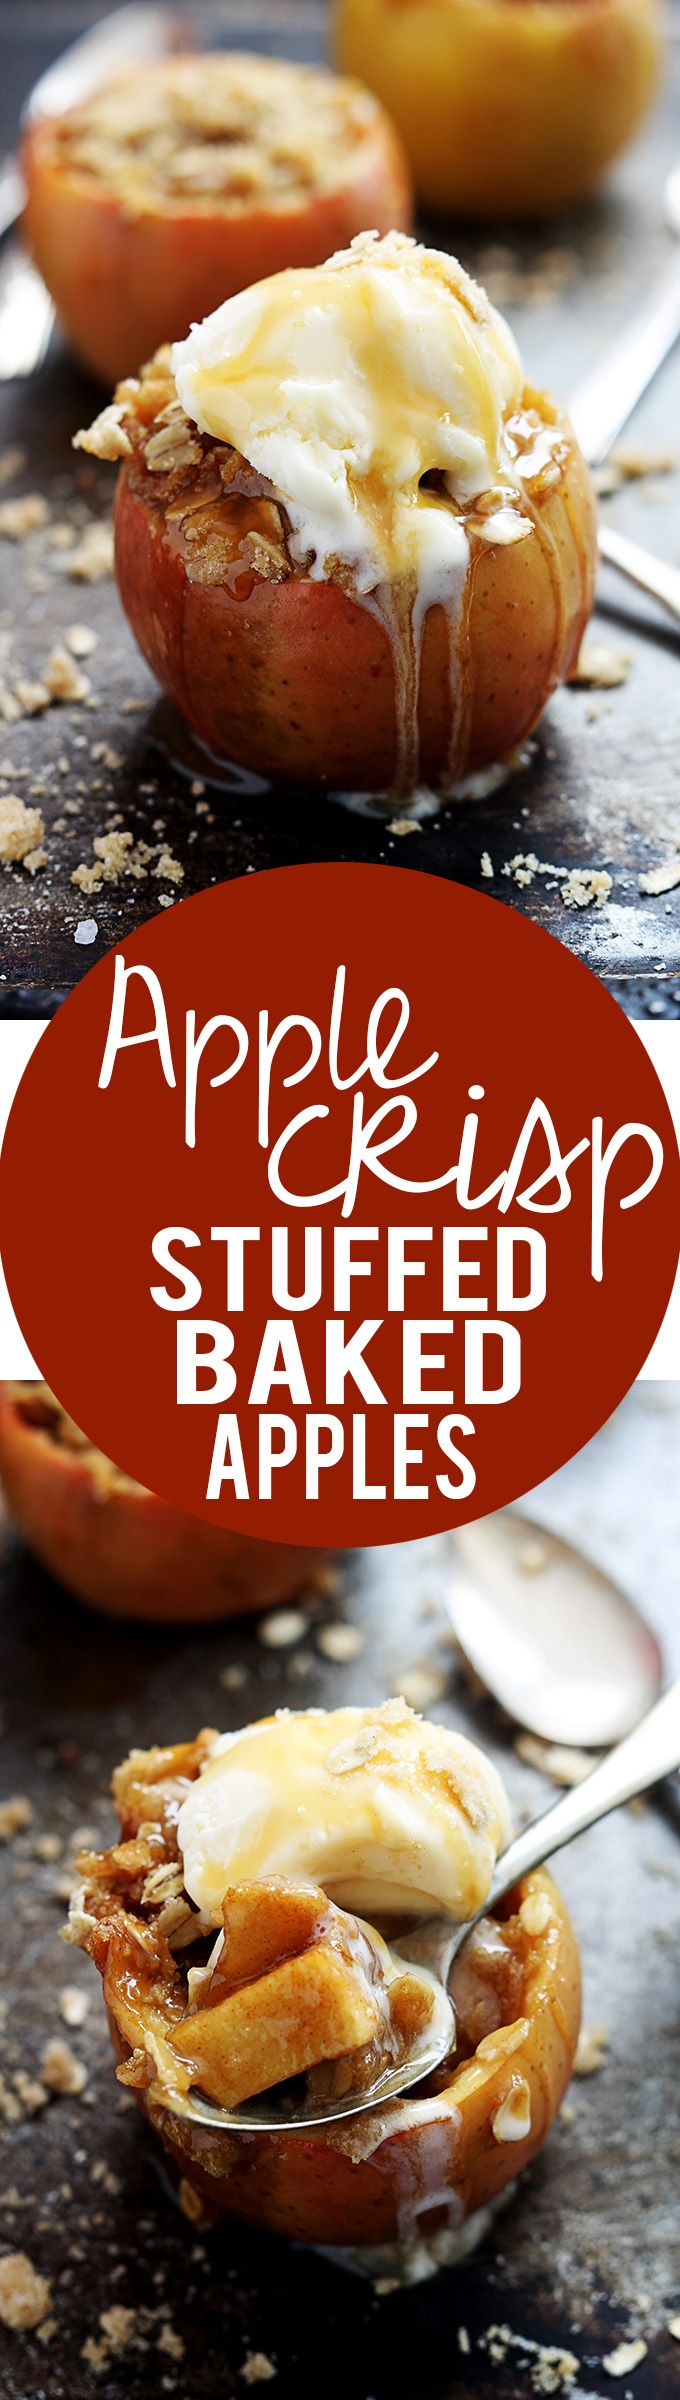 Apple Crisp Stuffed Baked Apples | Creme de la Crumb